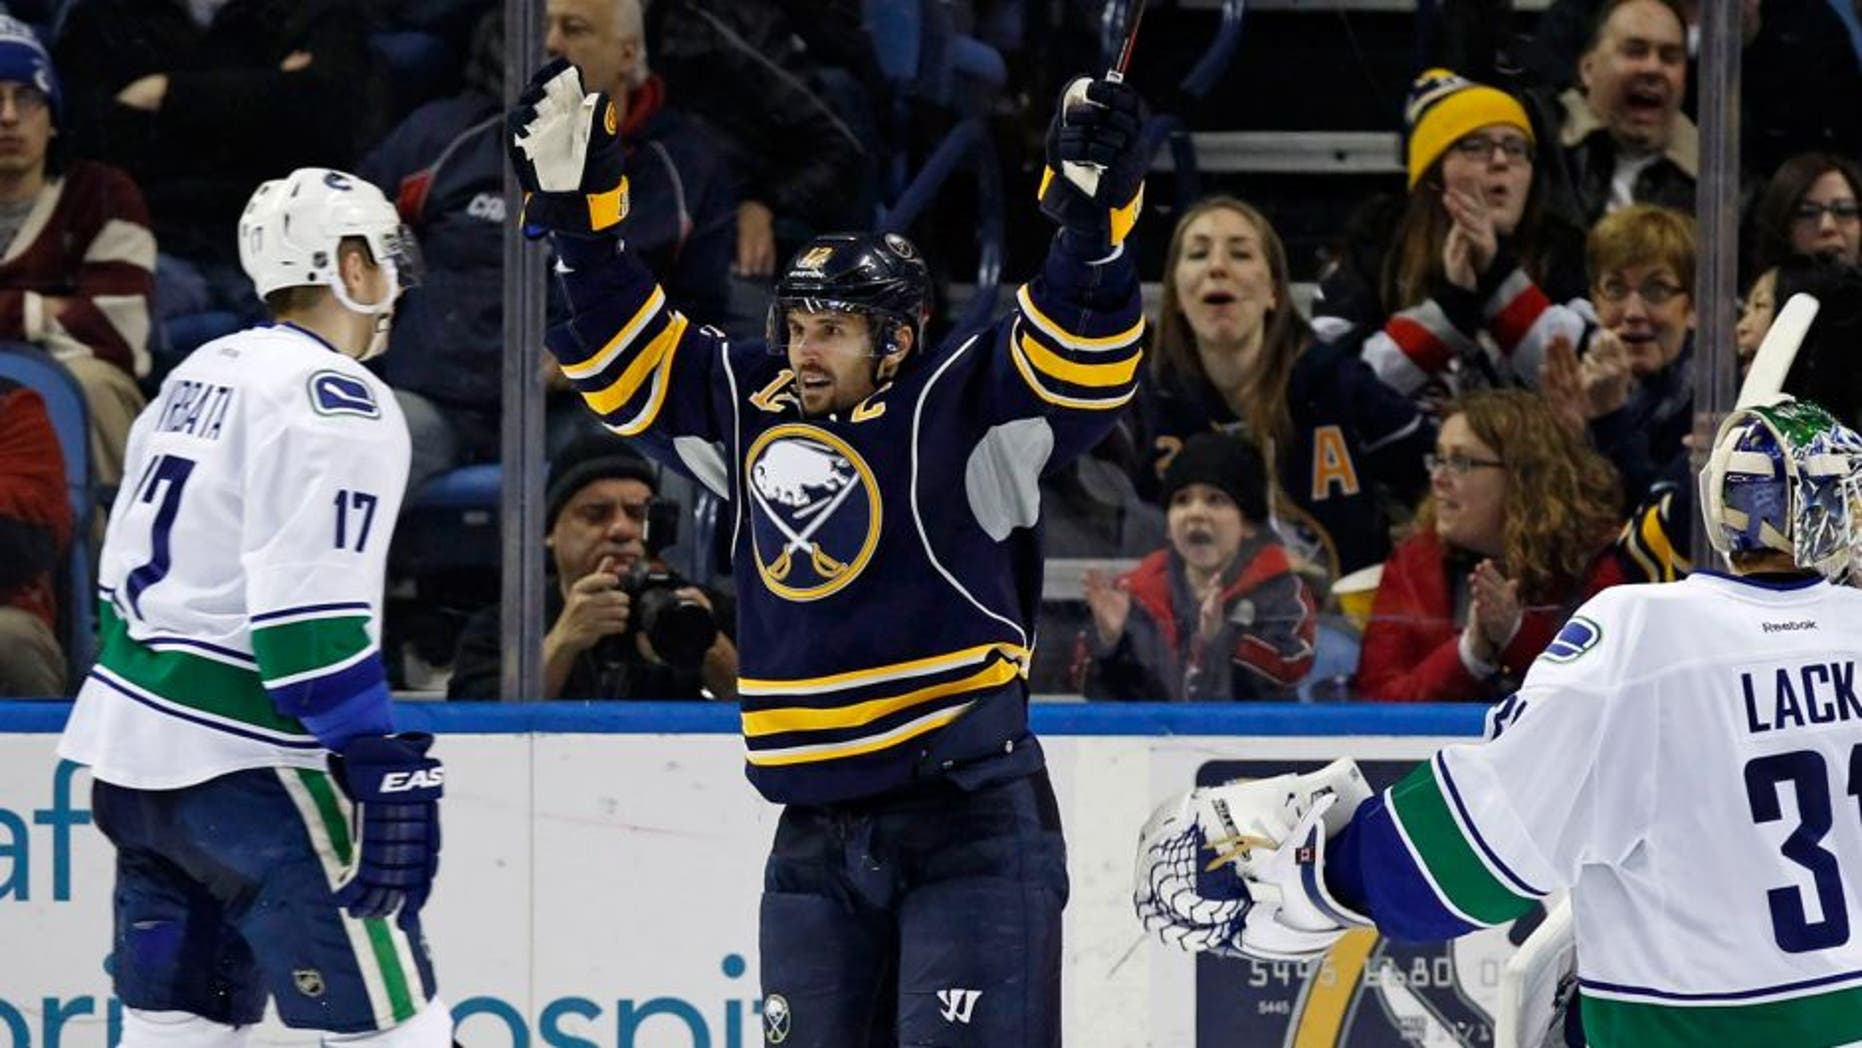 Feb 26, 2015; Buffalo, NY, USA; Buffalo Sabres right wing Brian Gionta (12) celebrates the goal by defenseman Andrej Meszaros (41) (not shown) during the third period at First Niagara Center. Sabres beat the Canucks 6-3. Mandatory Credit: Kevin Hoffman-USA TODAY Sports